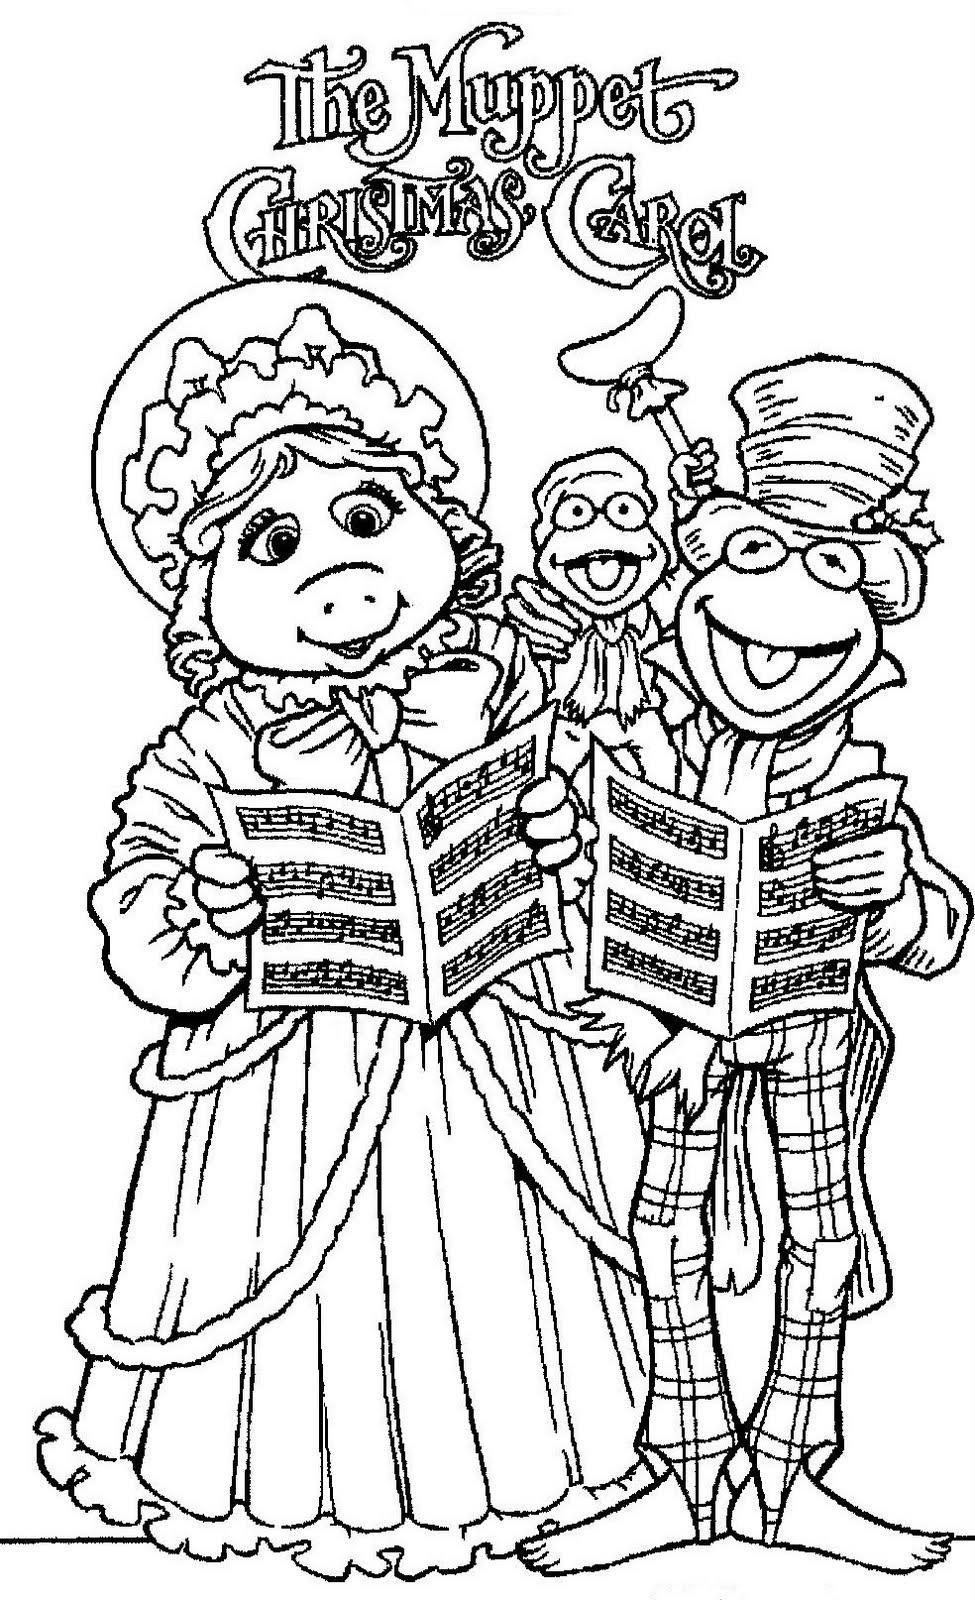 The Muppets Drawings Coloring ~ Child Coloring